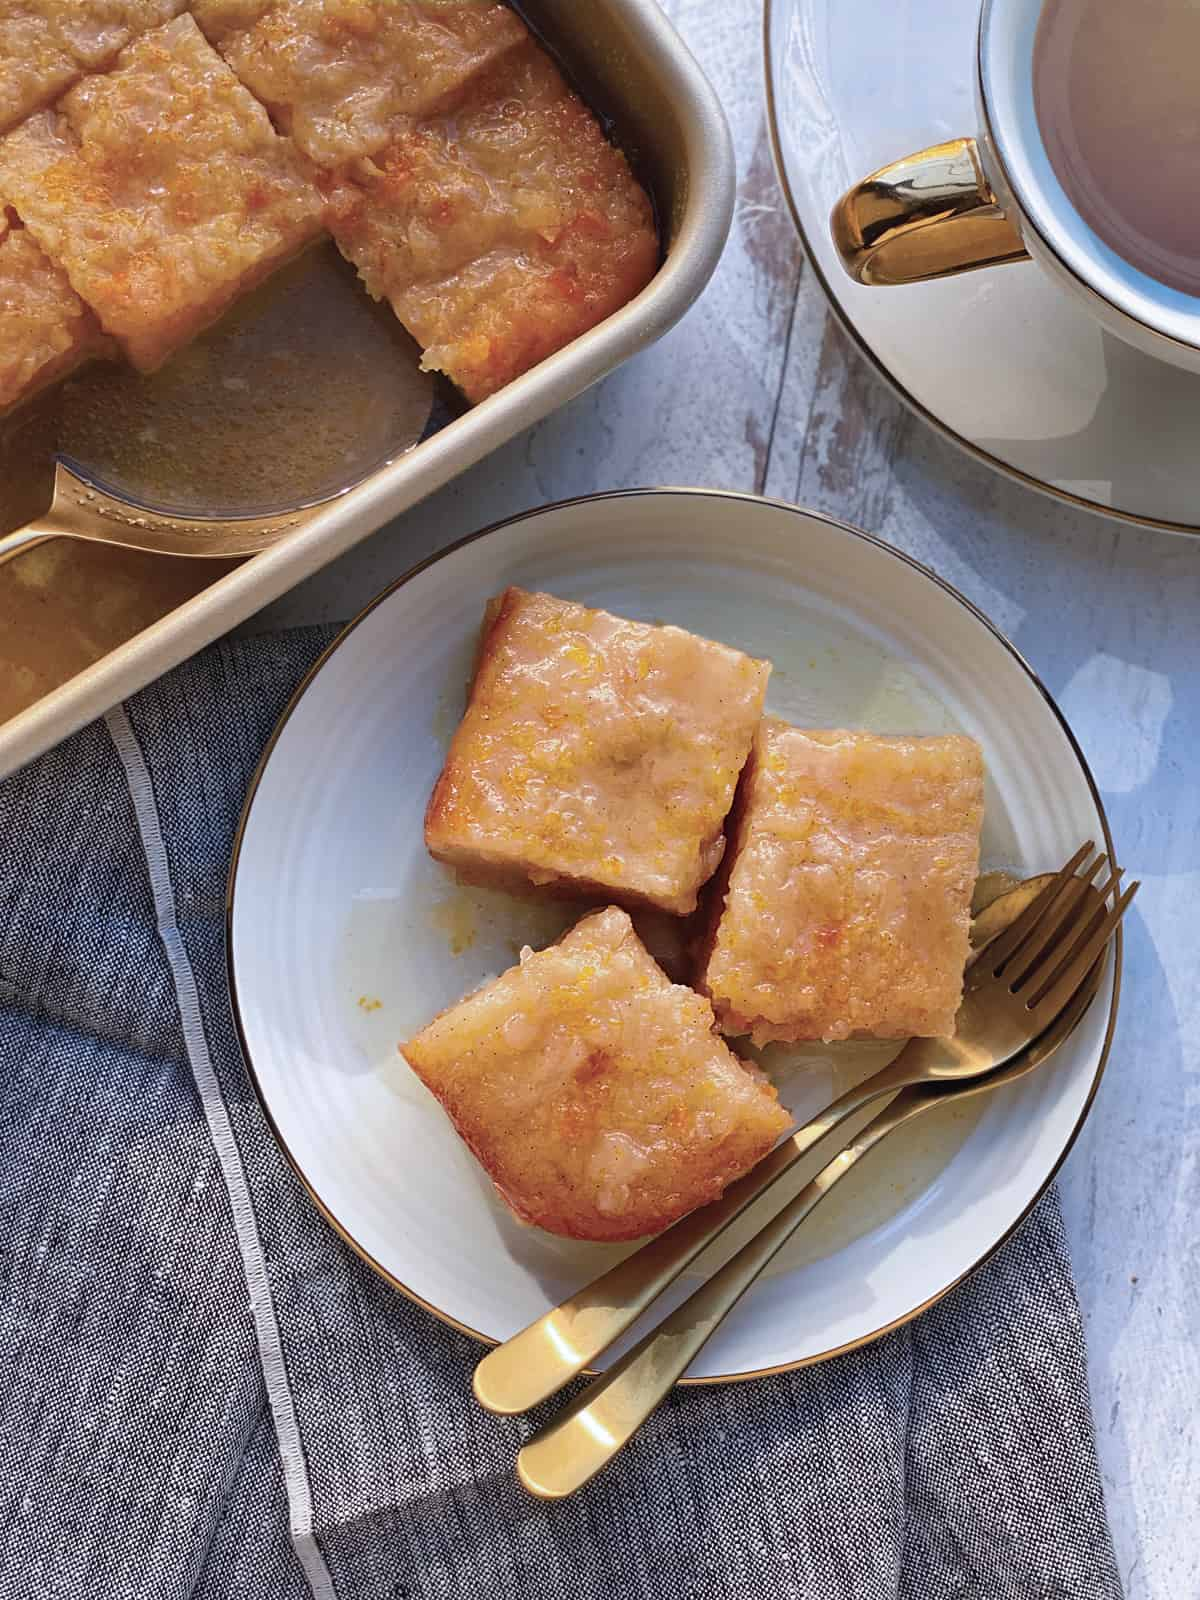 A plate with three pieces of greek orange phyllo cake utensils over napkin. A pan with cake at the back.